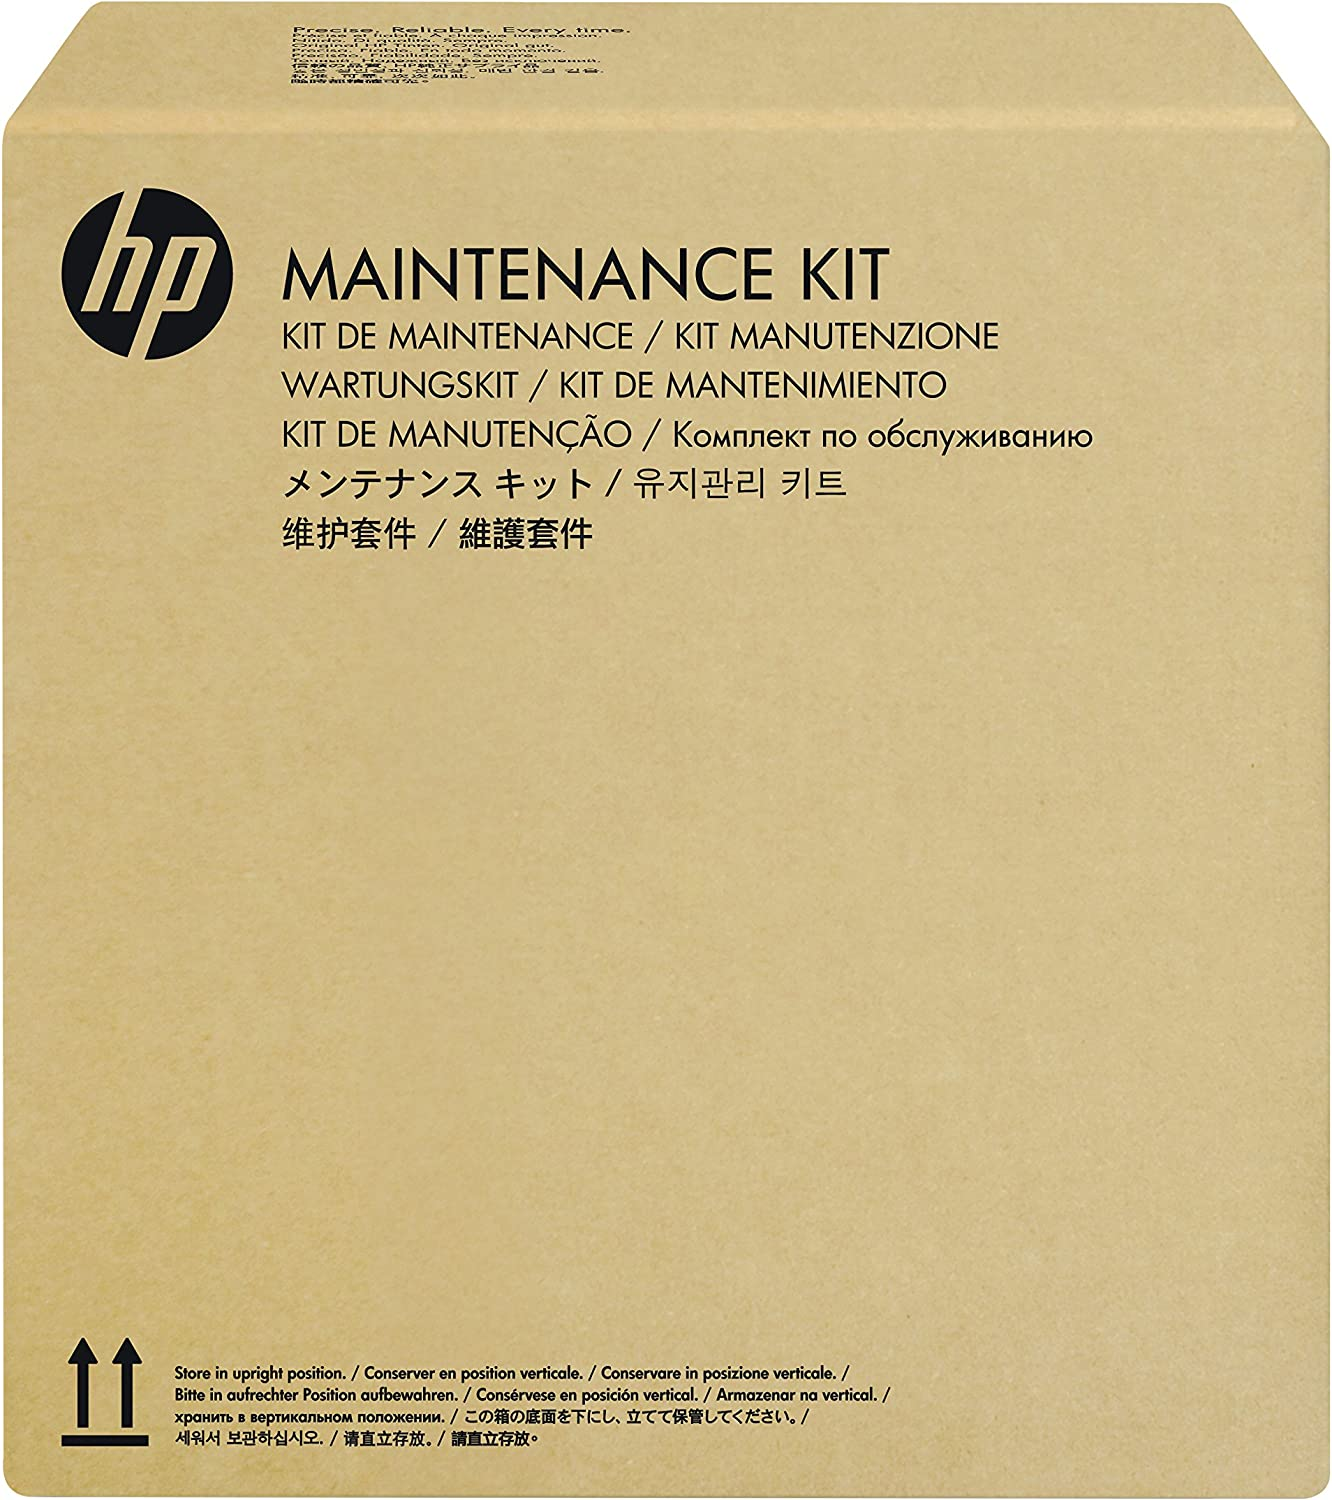 HP W5U23A ADF Roller Replacement Kit for M527, M577 Printers